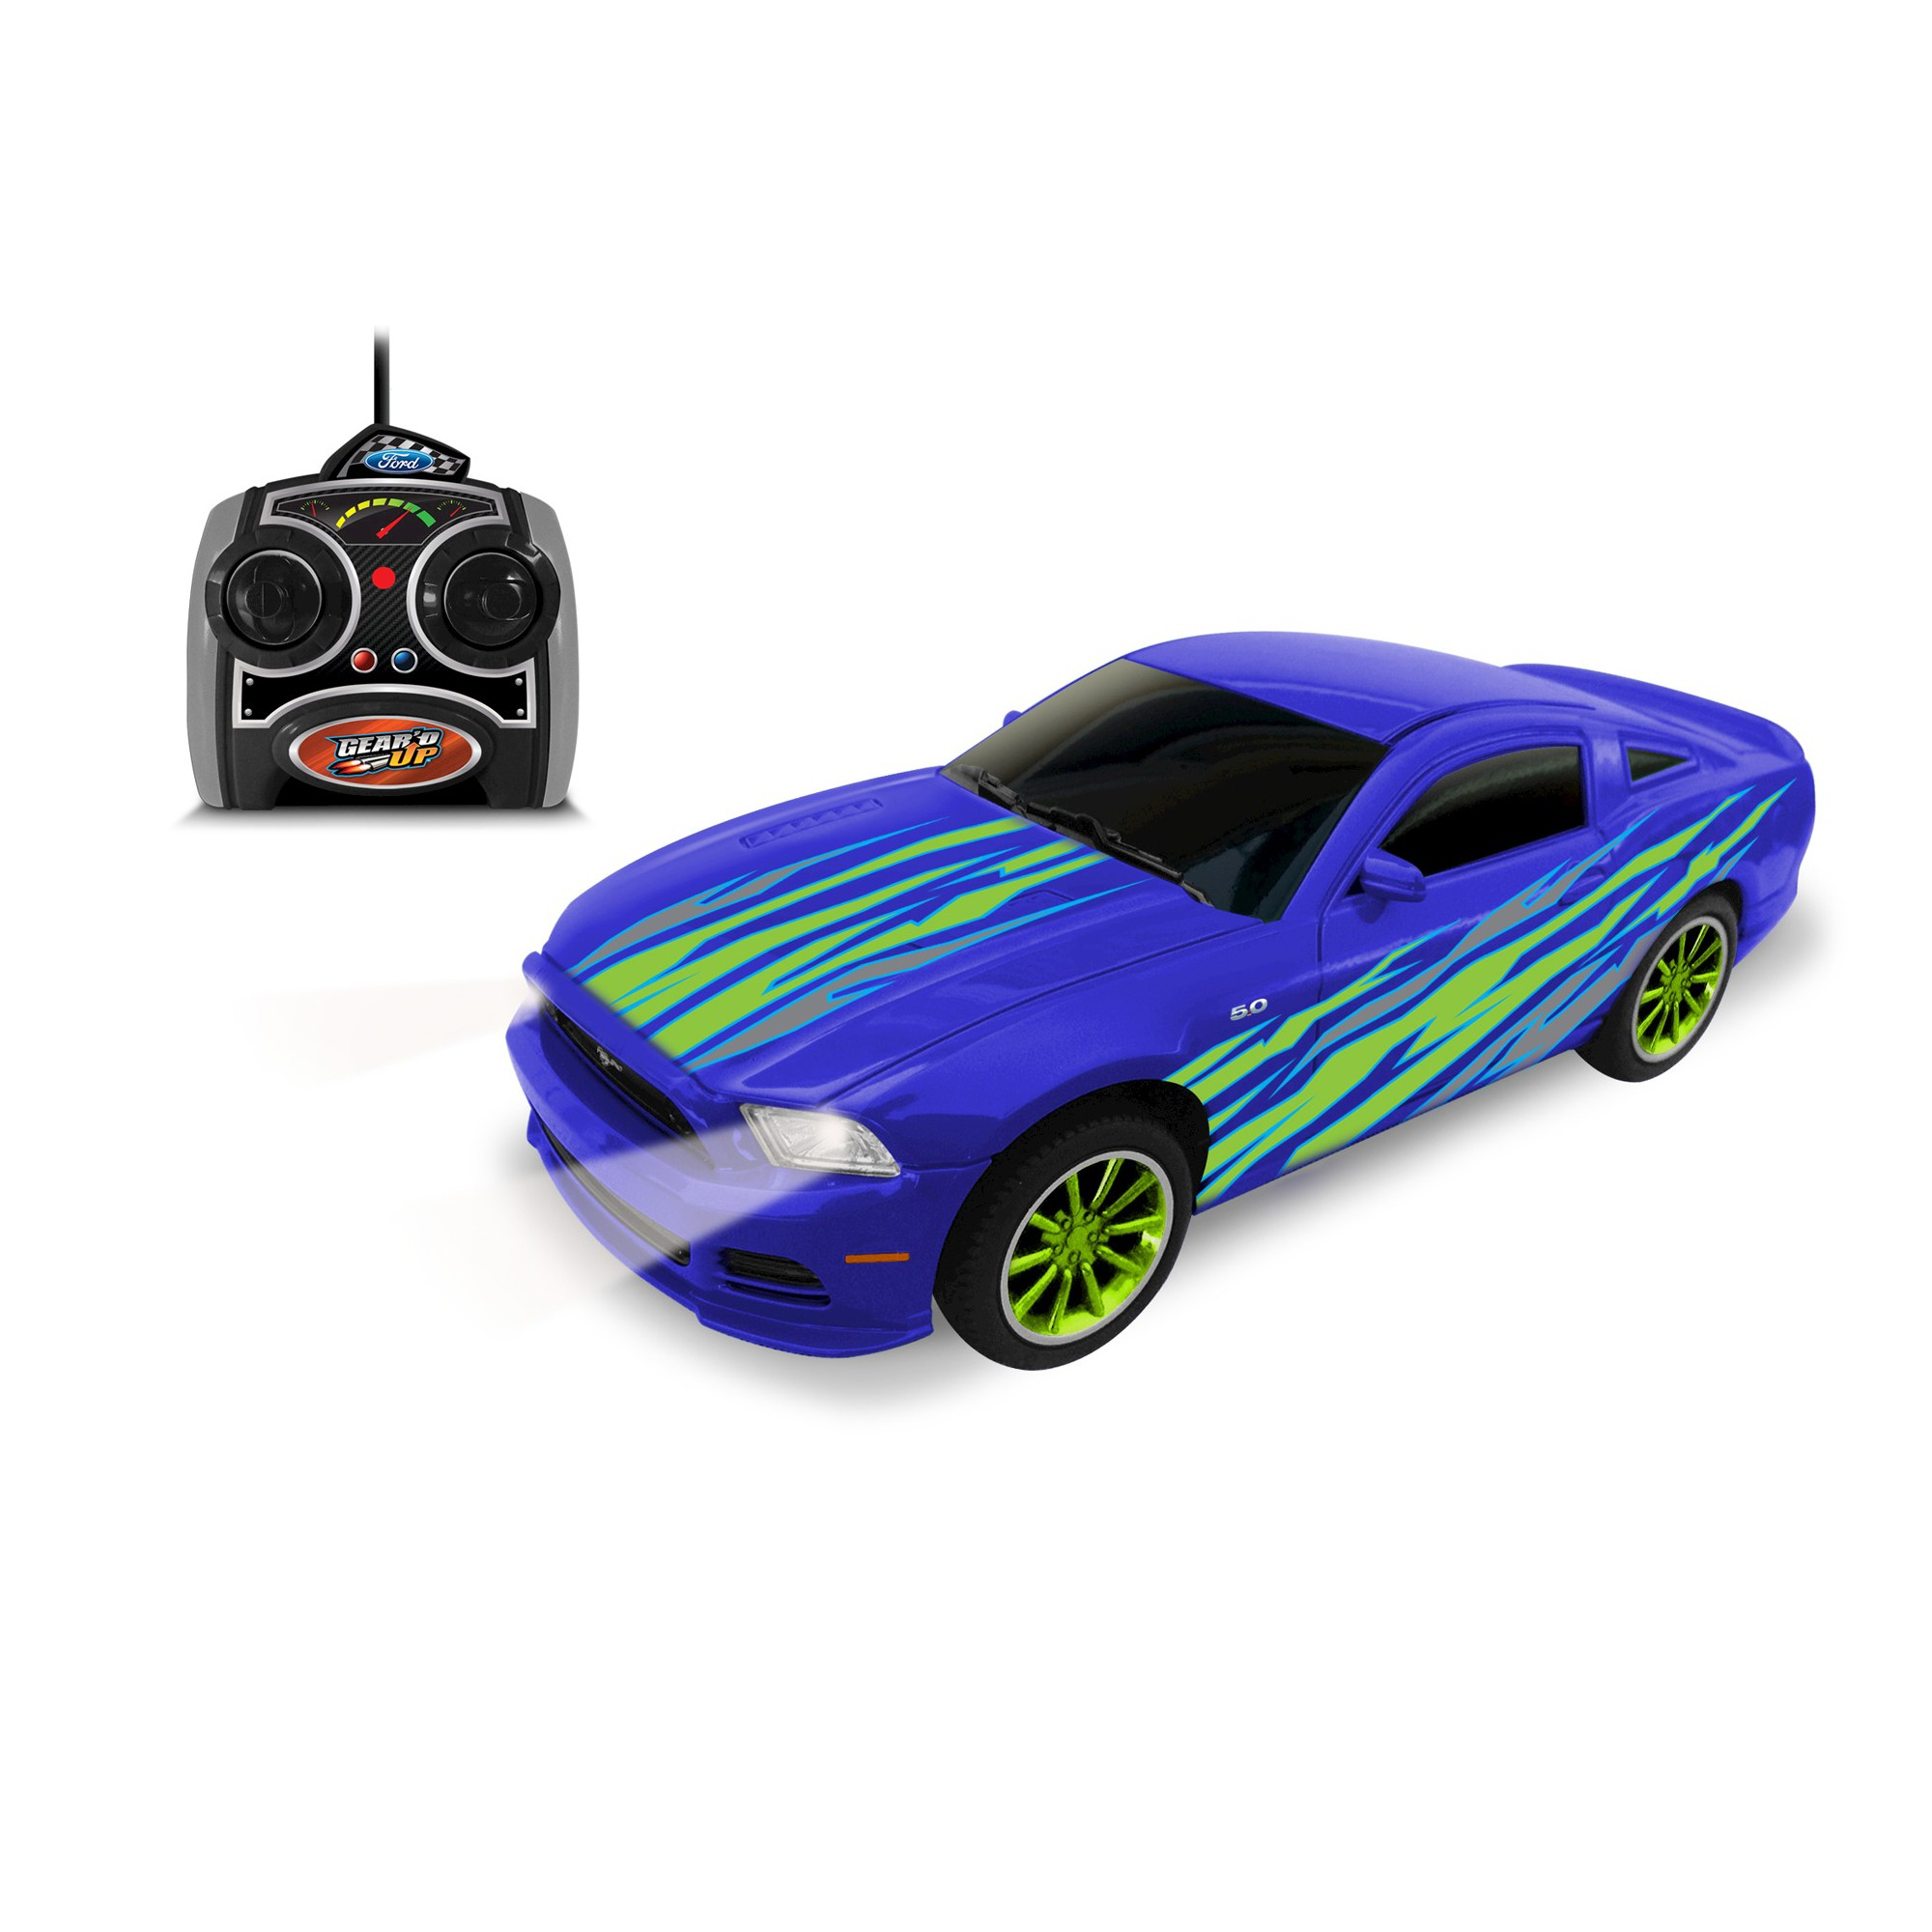 Jam'n Products Gear'd Up Ford Mustang GT Remote Control